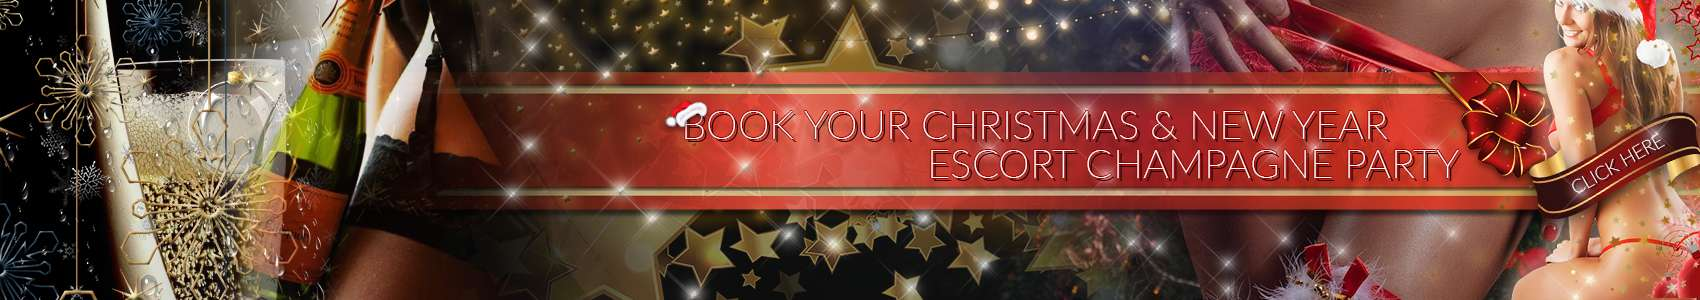 Book your christmas & new year escort champagne party